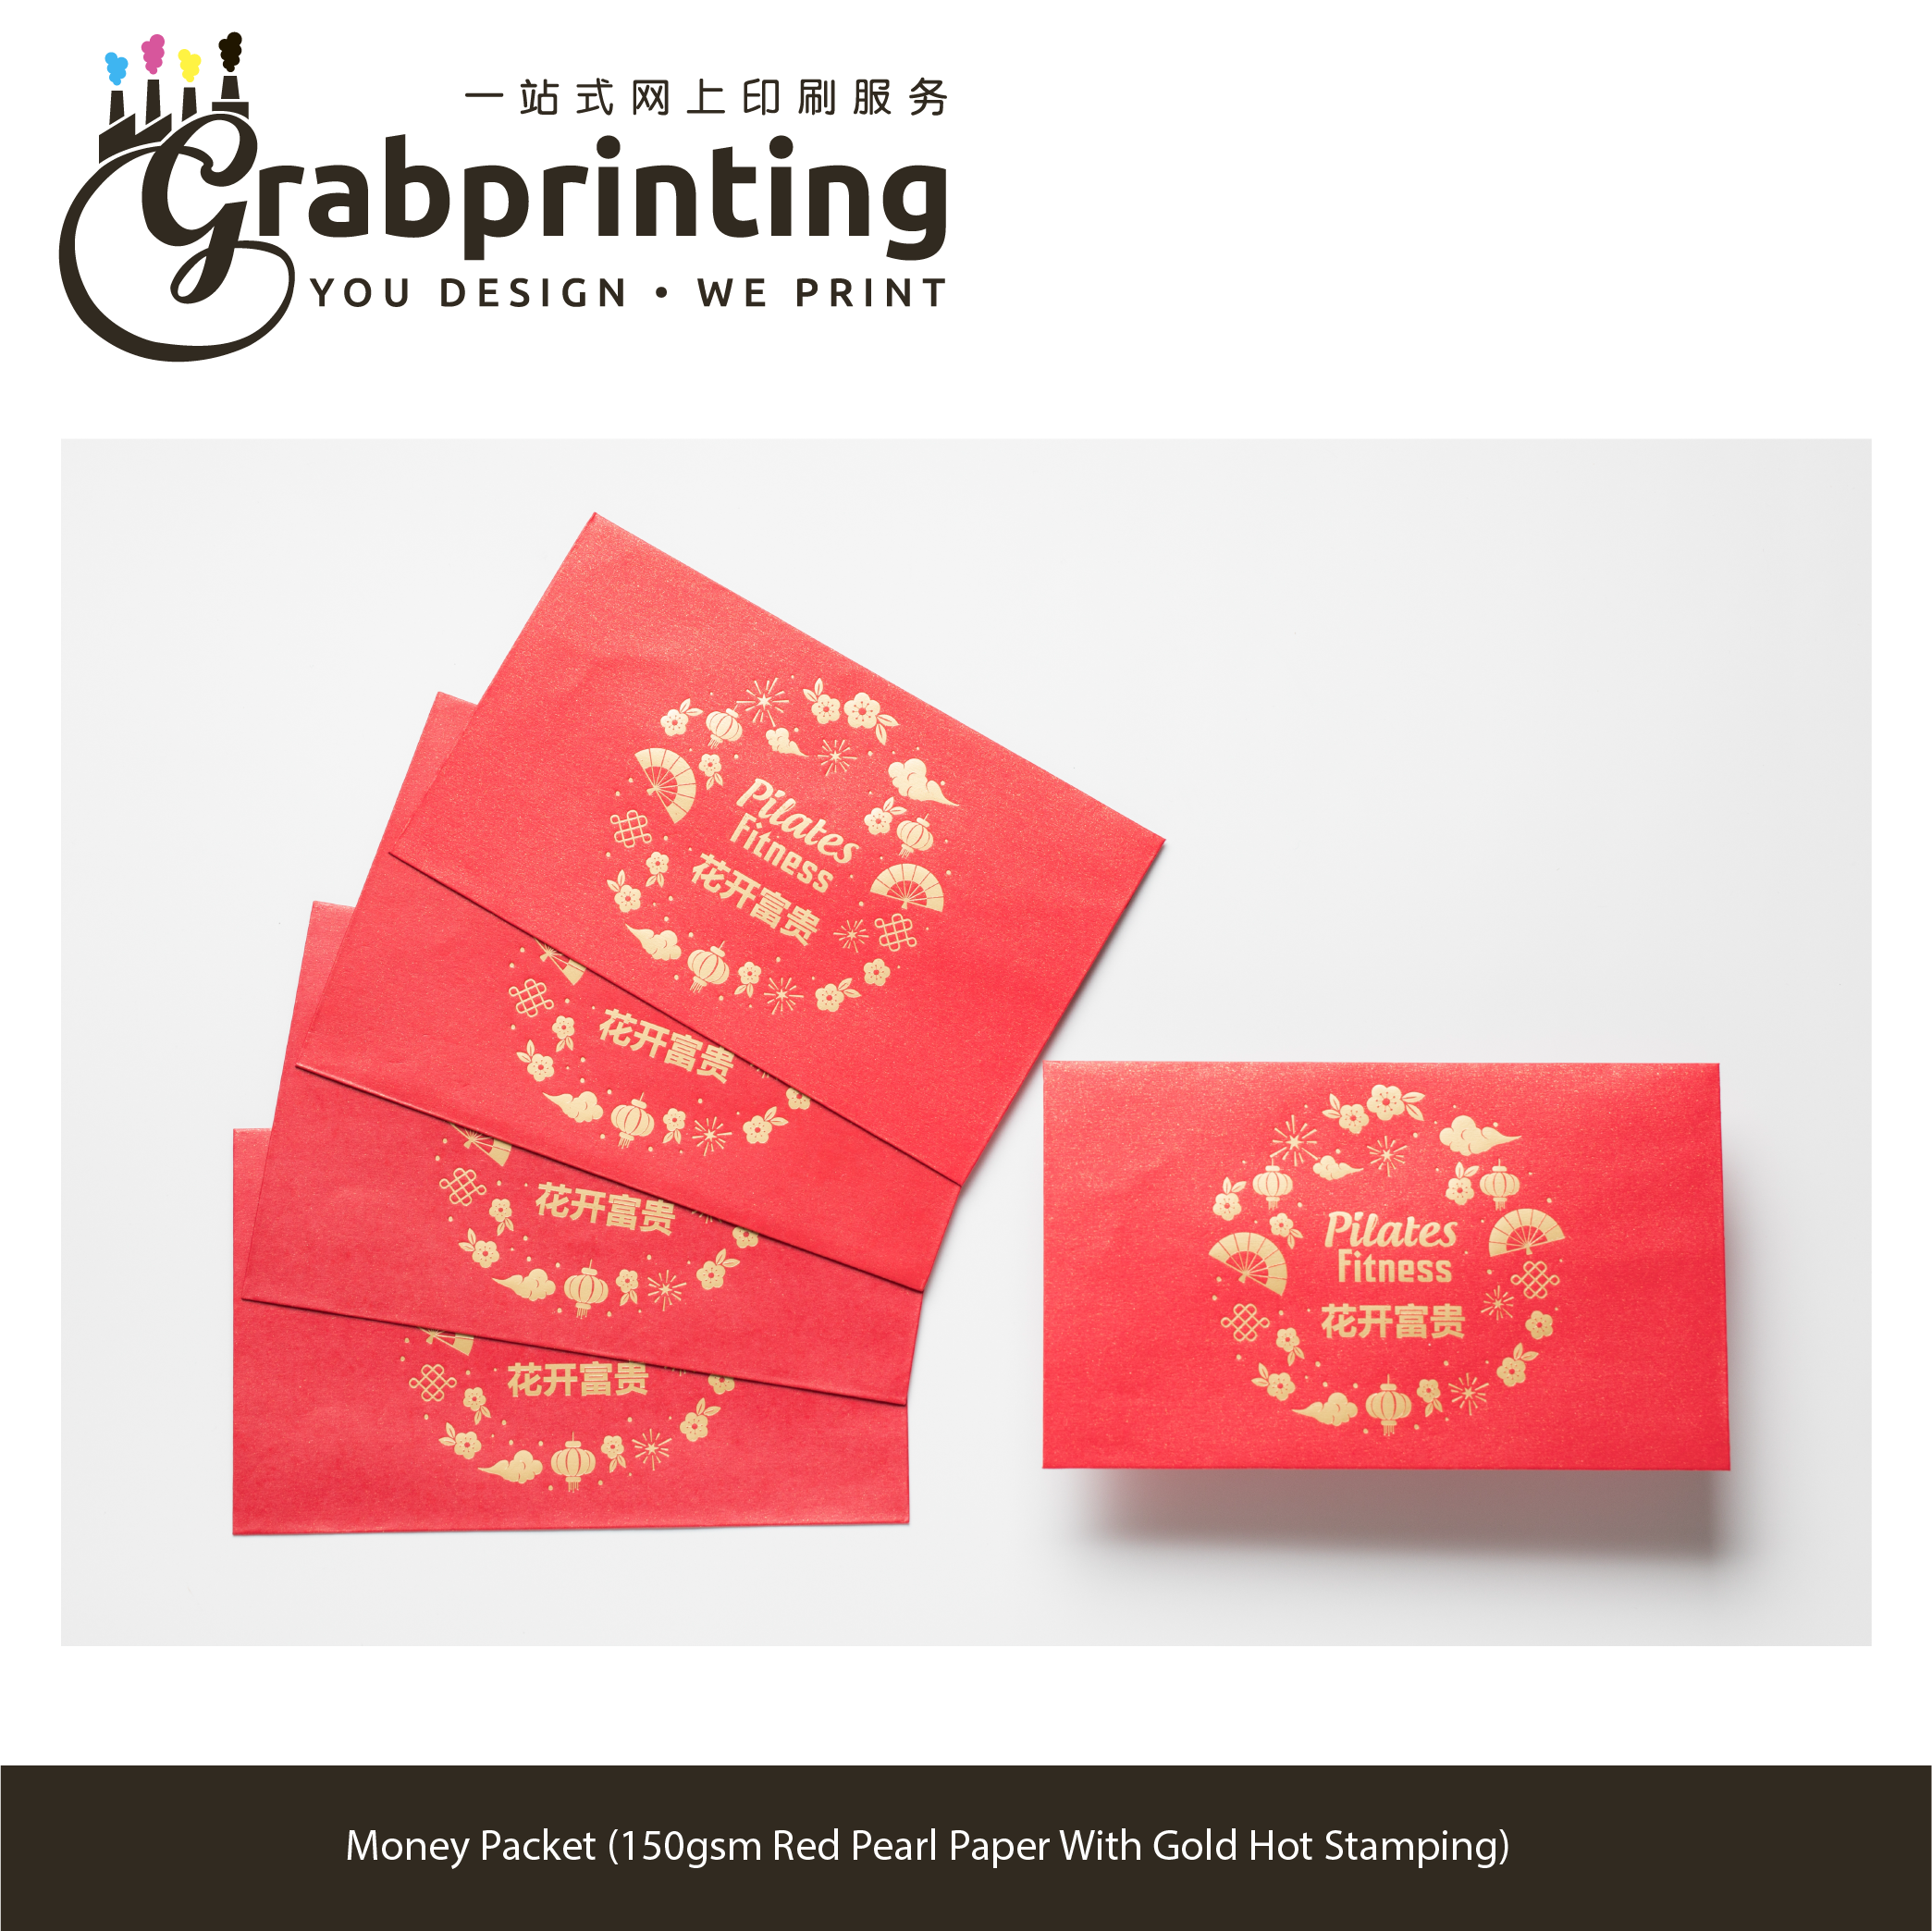 Custom Money Packet Printing (Pearl Paper) grabprinting 01Money packet 150gsm red pearl paper with gold hot stamping 501px 501px